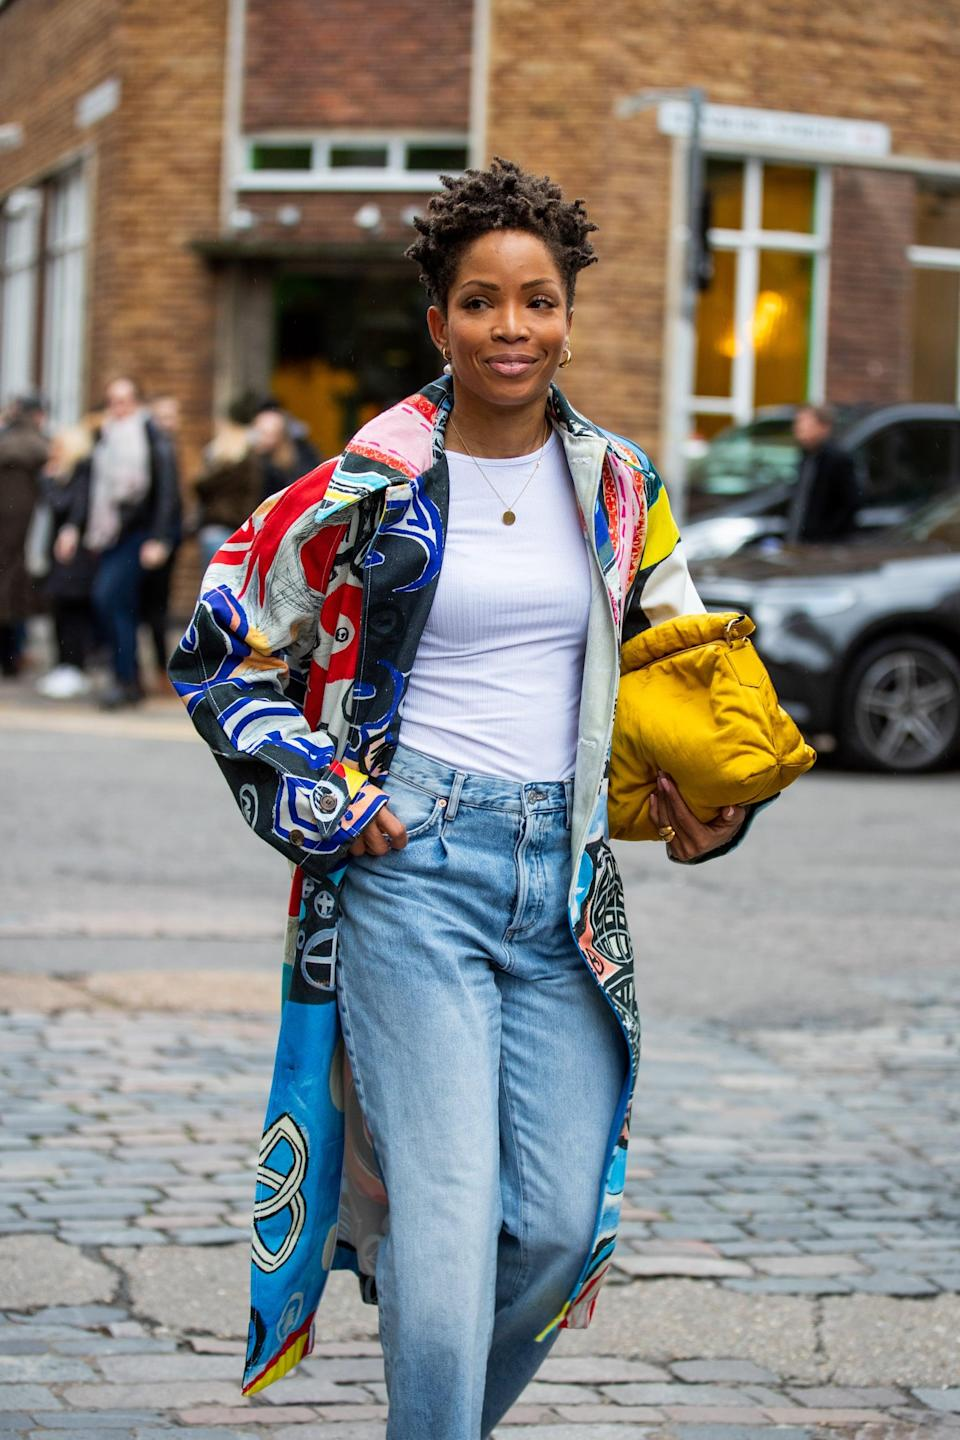 <p>Liven up a baggy jeans and t-shirt outfit with a colorful printed jacket and a bright clutch. </p>